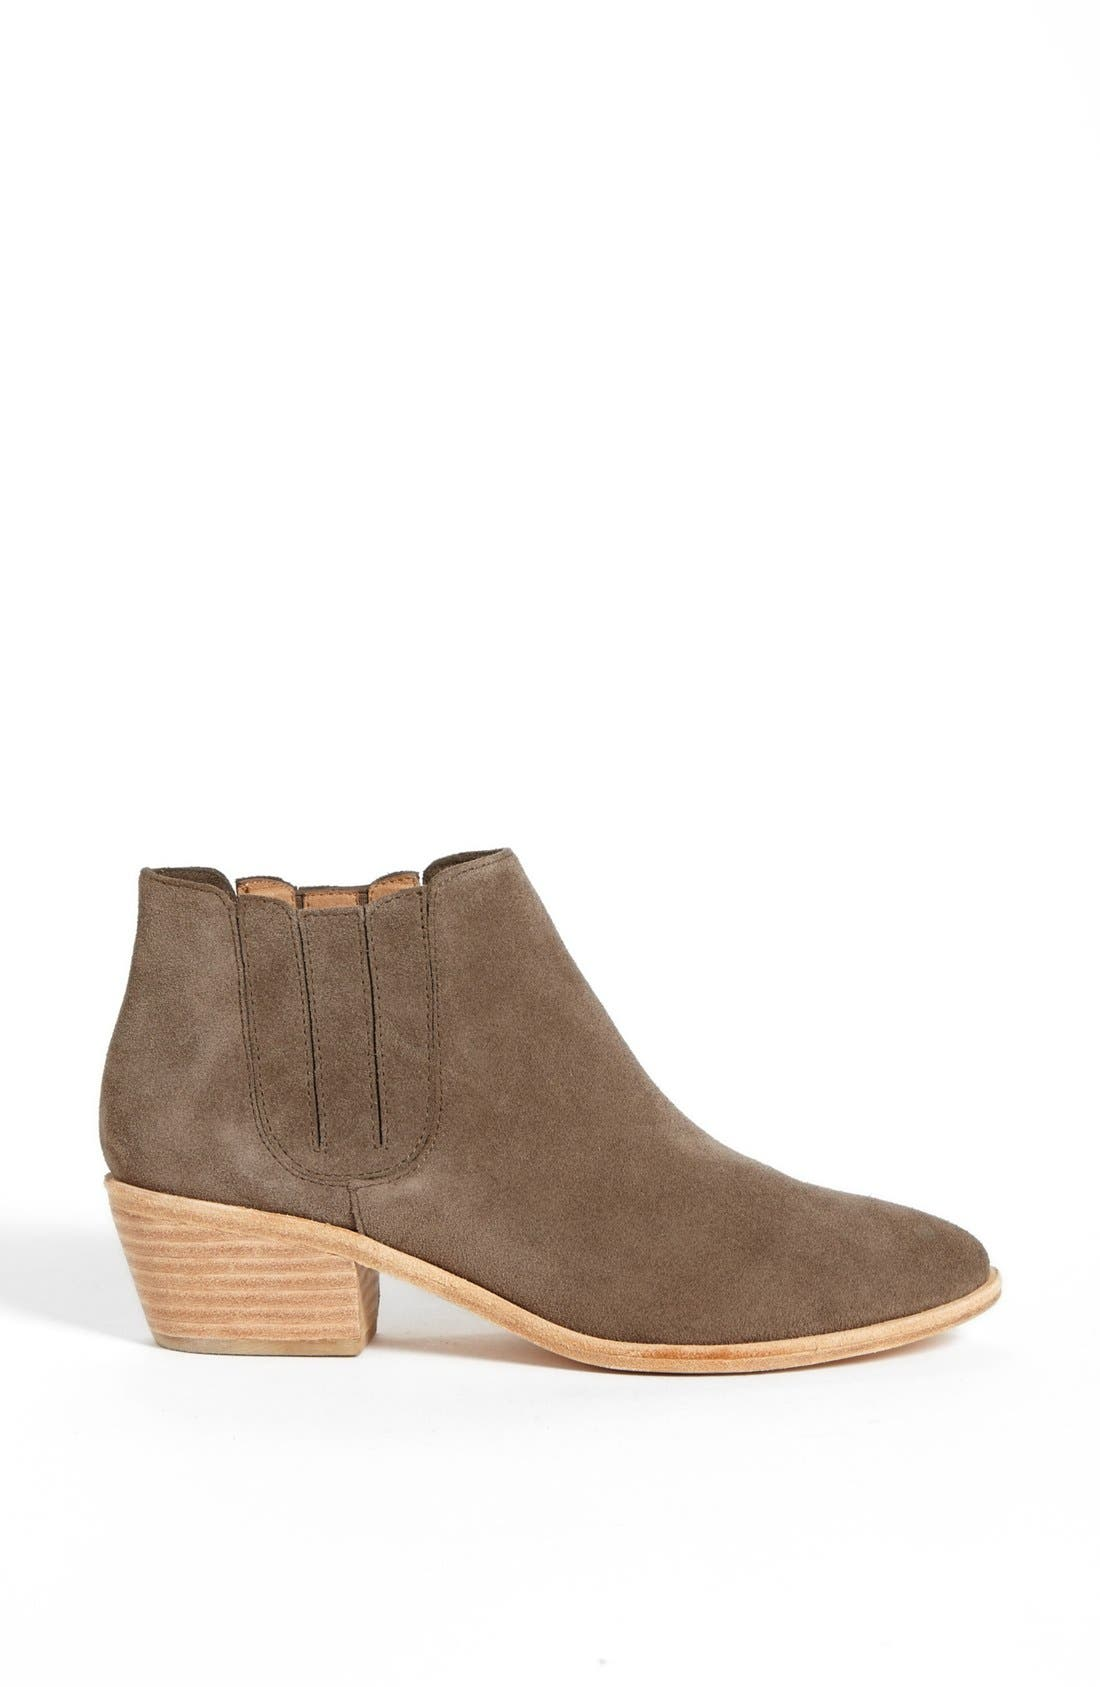 Alternate Image 4  - Joie 'Barlow' Suede Bootie (Women)